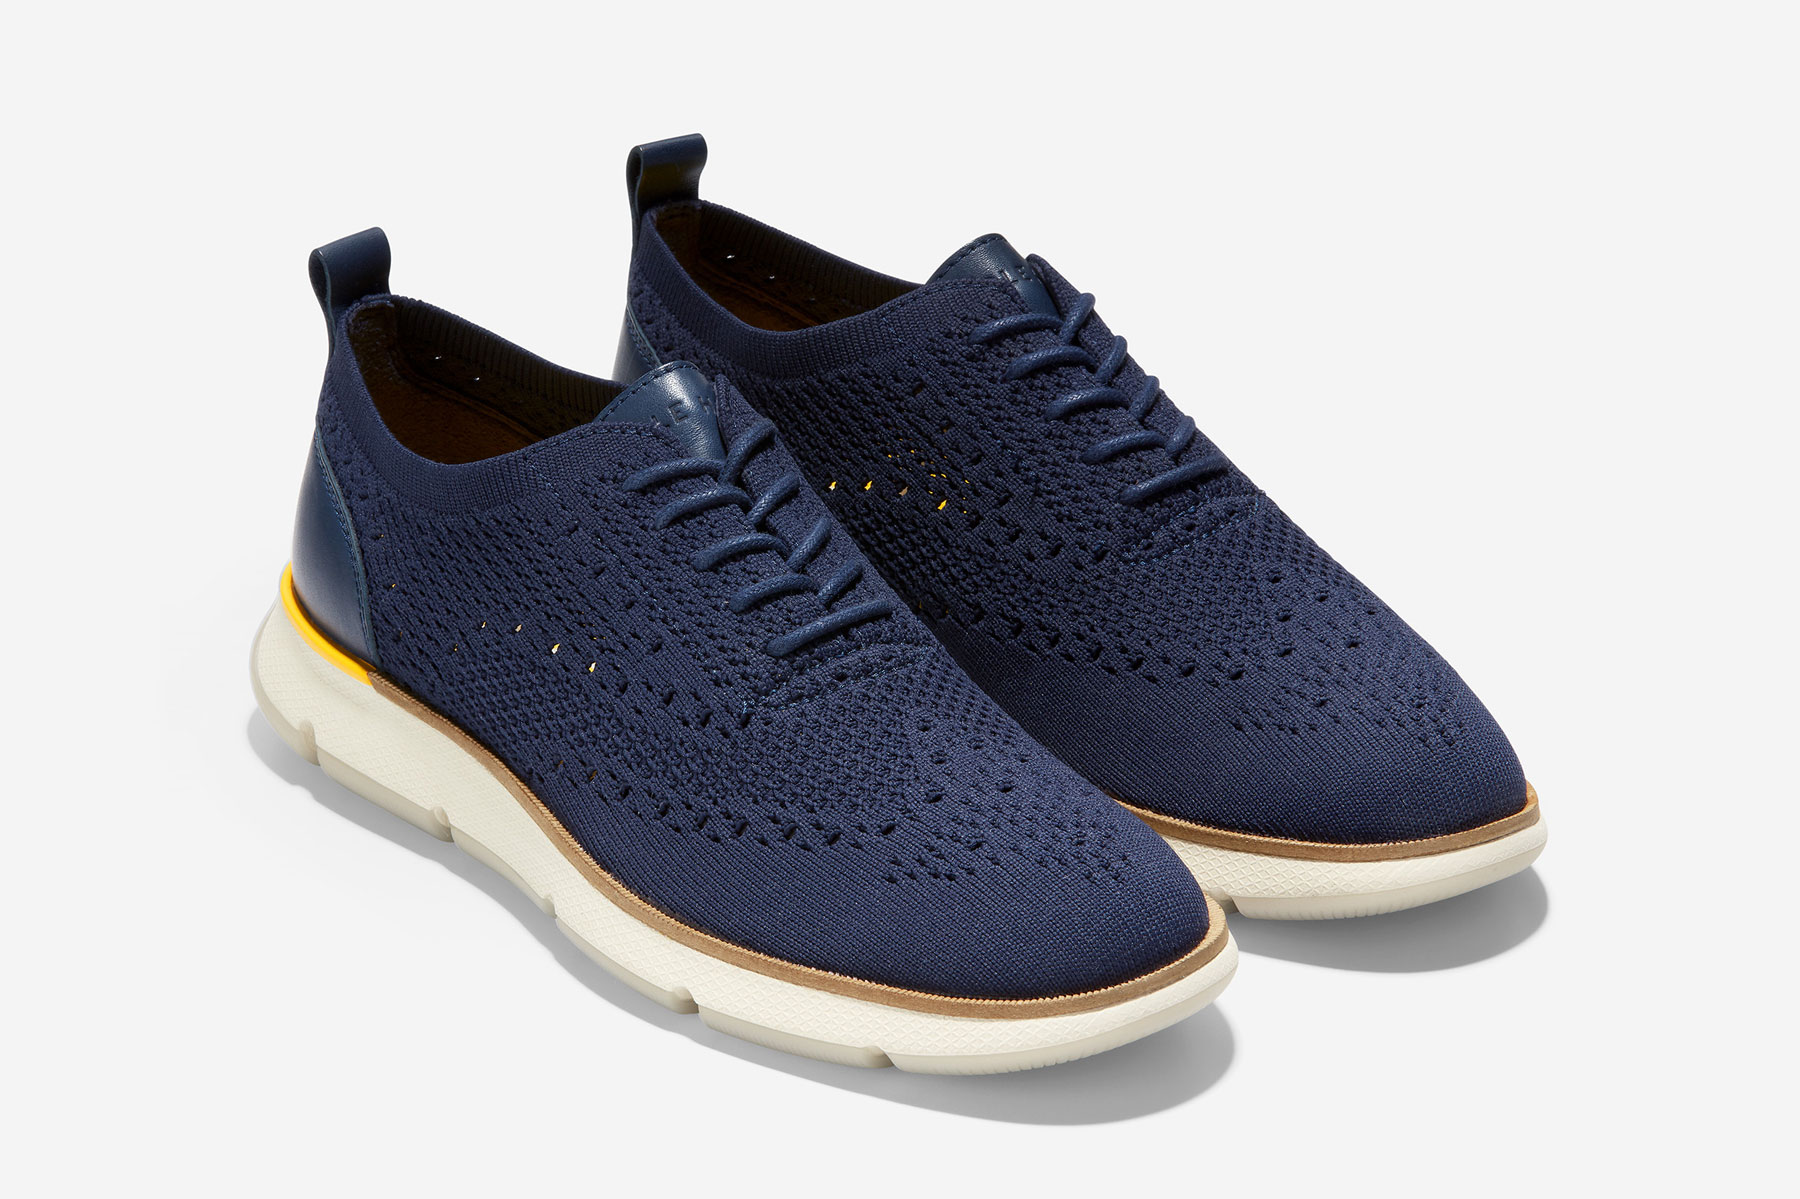 Women's navy oxford knit shoes